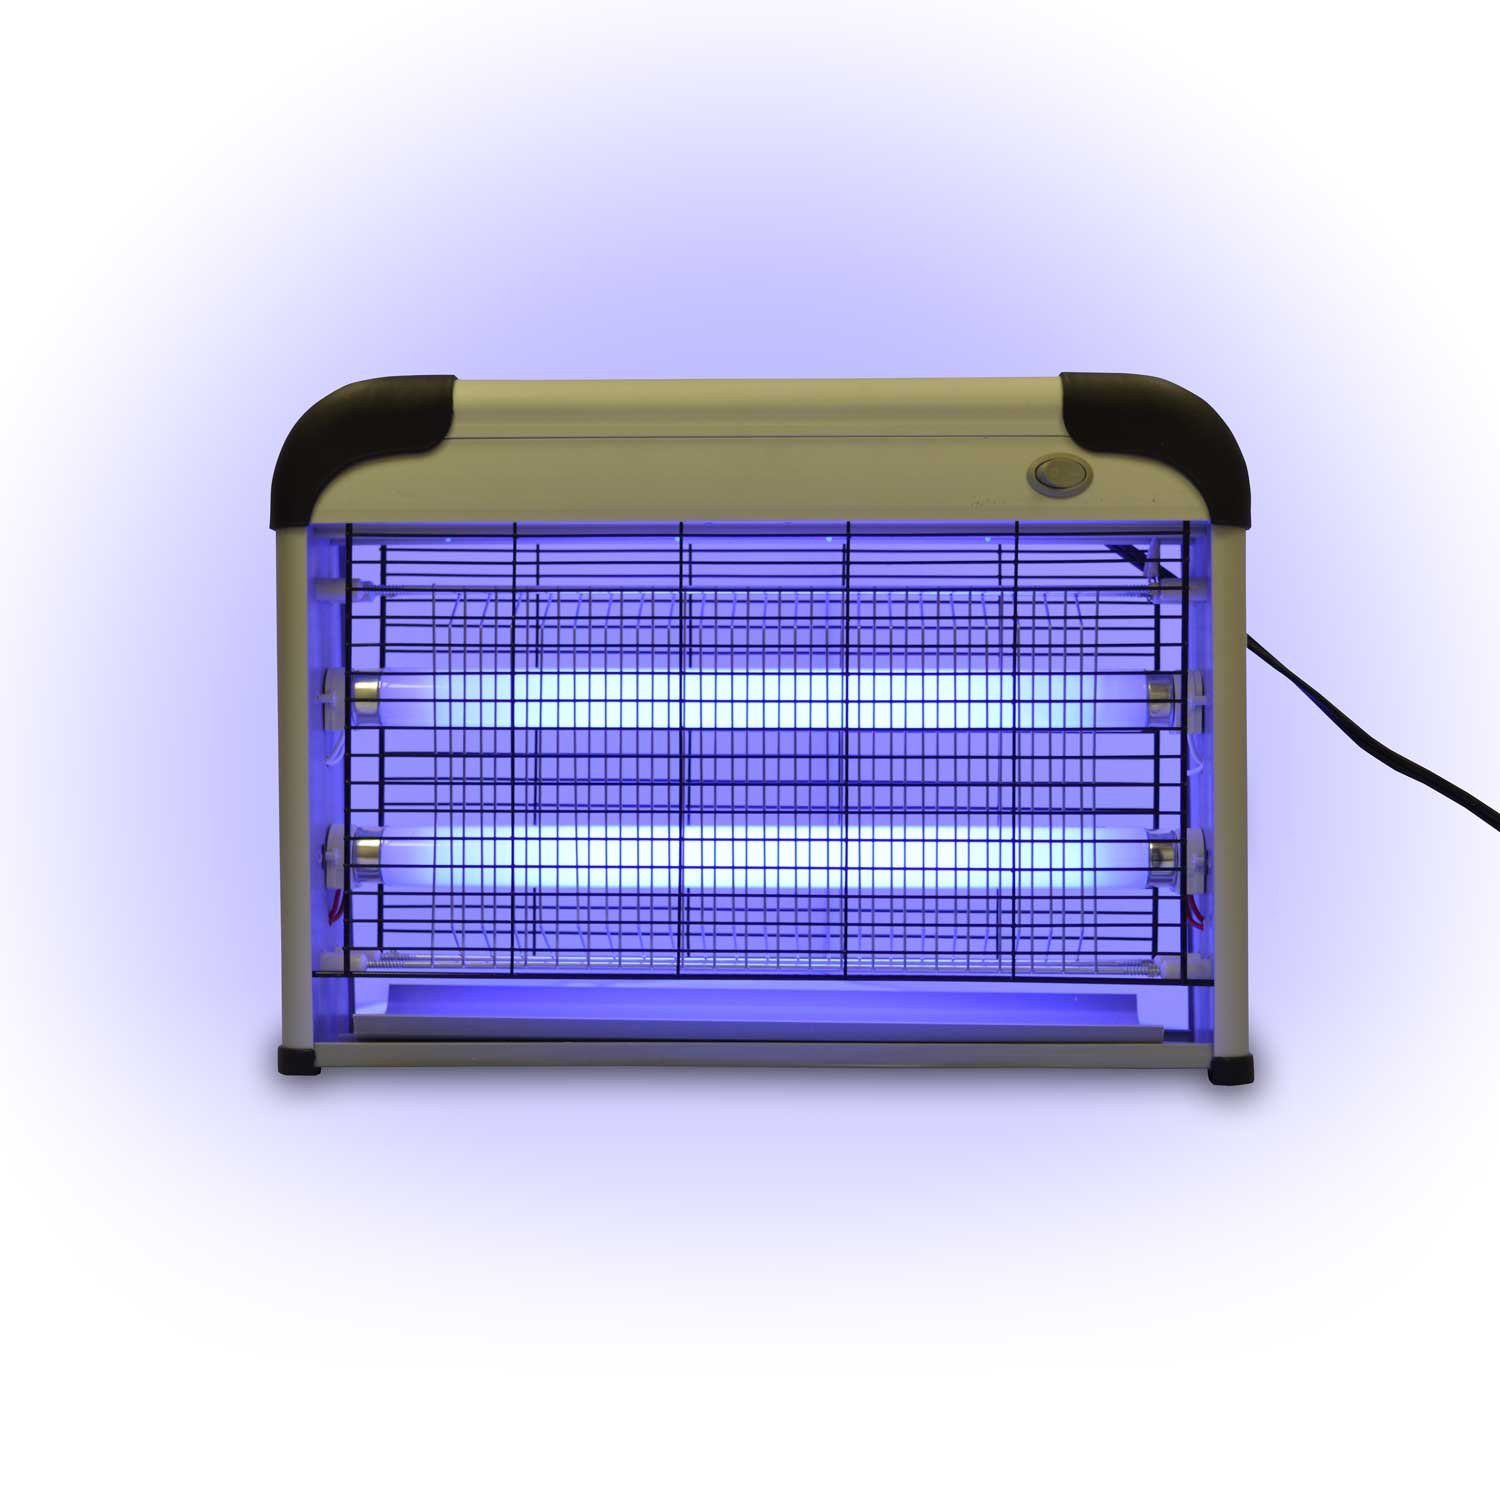 electronic bug zappers indoor insect killer zapper 15 5 inch camping hunting new ebay